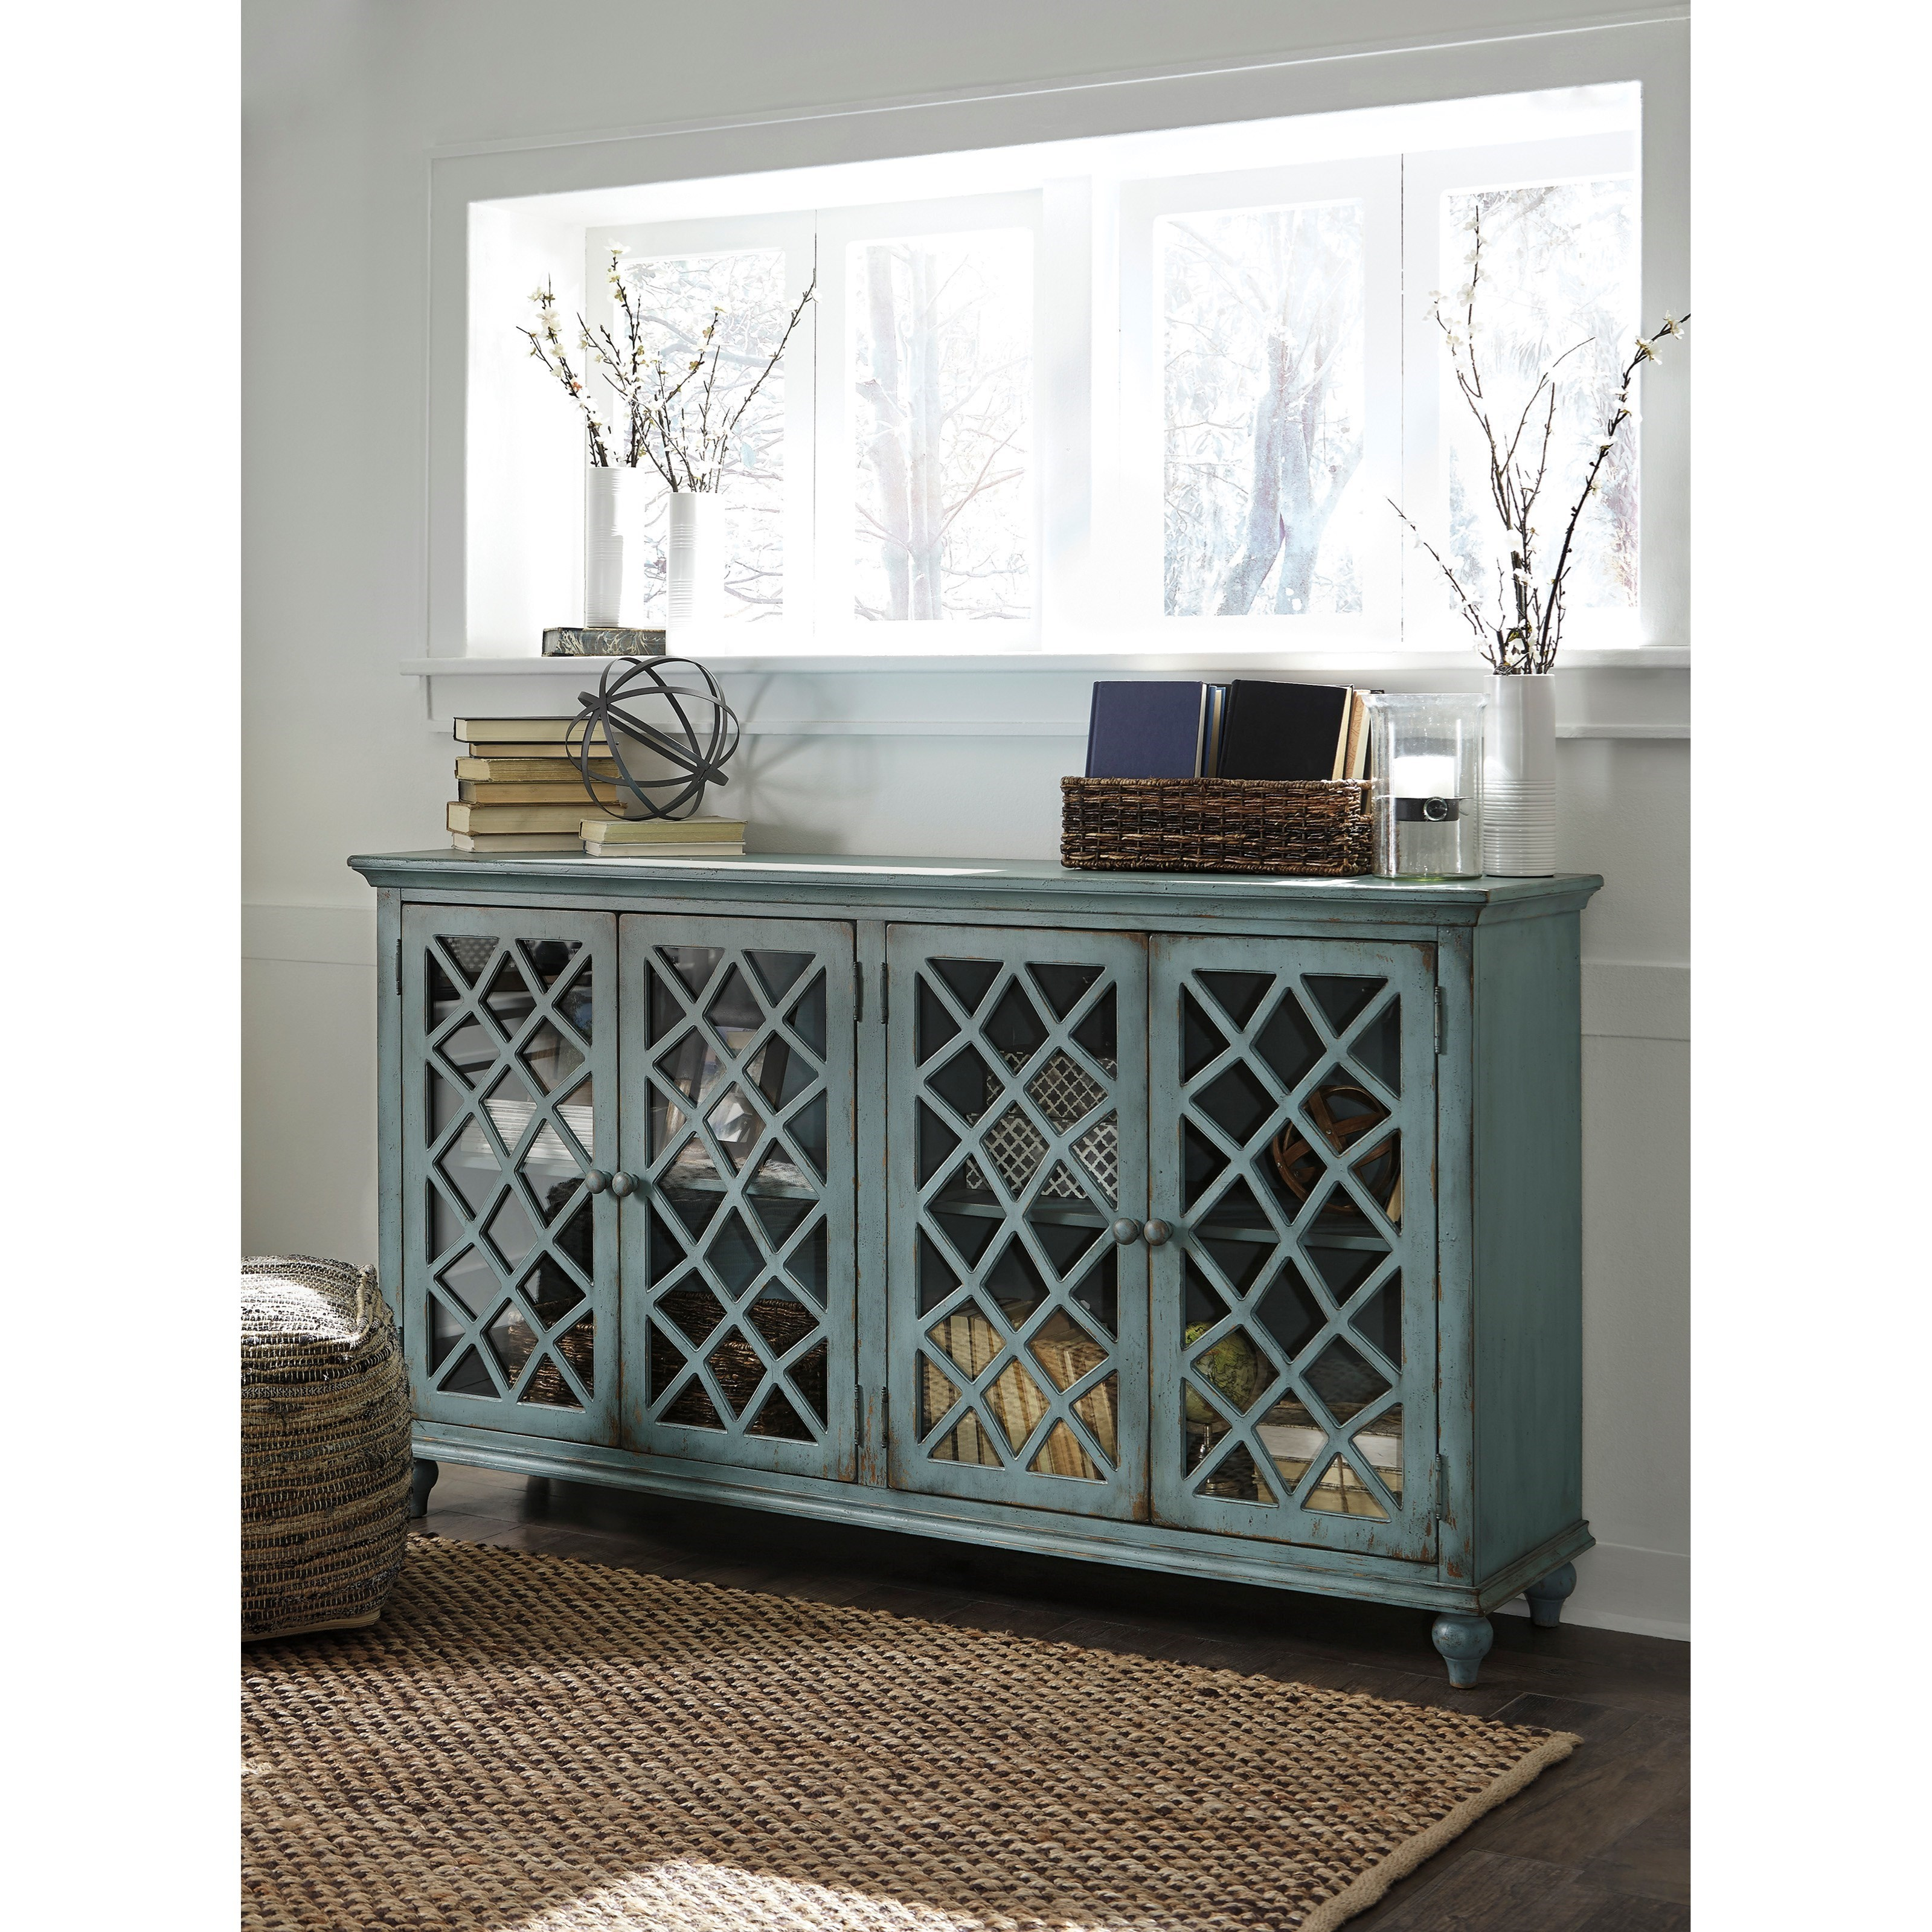 lattice glass door accent cabinet antique teal finish products signature design ashley color cottage accents table with doors rustic chic coffee round dining cloth xmas